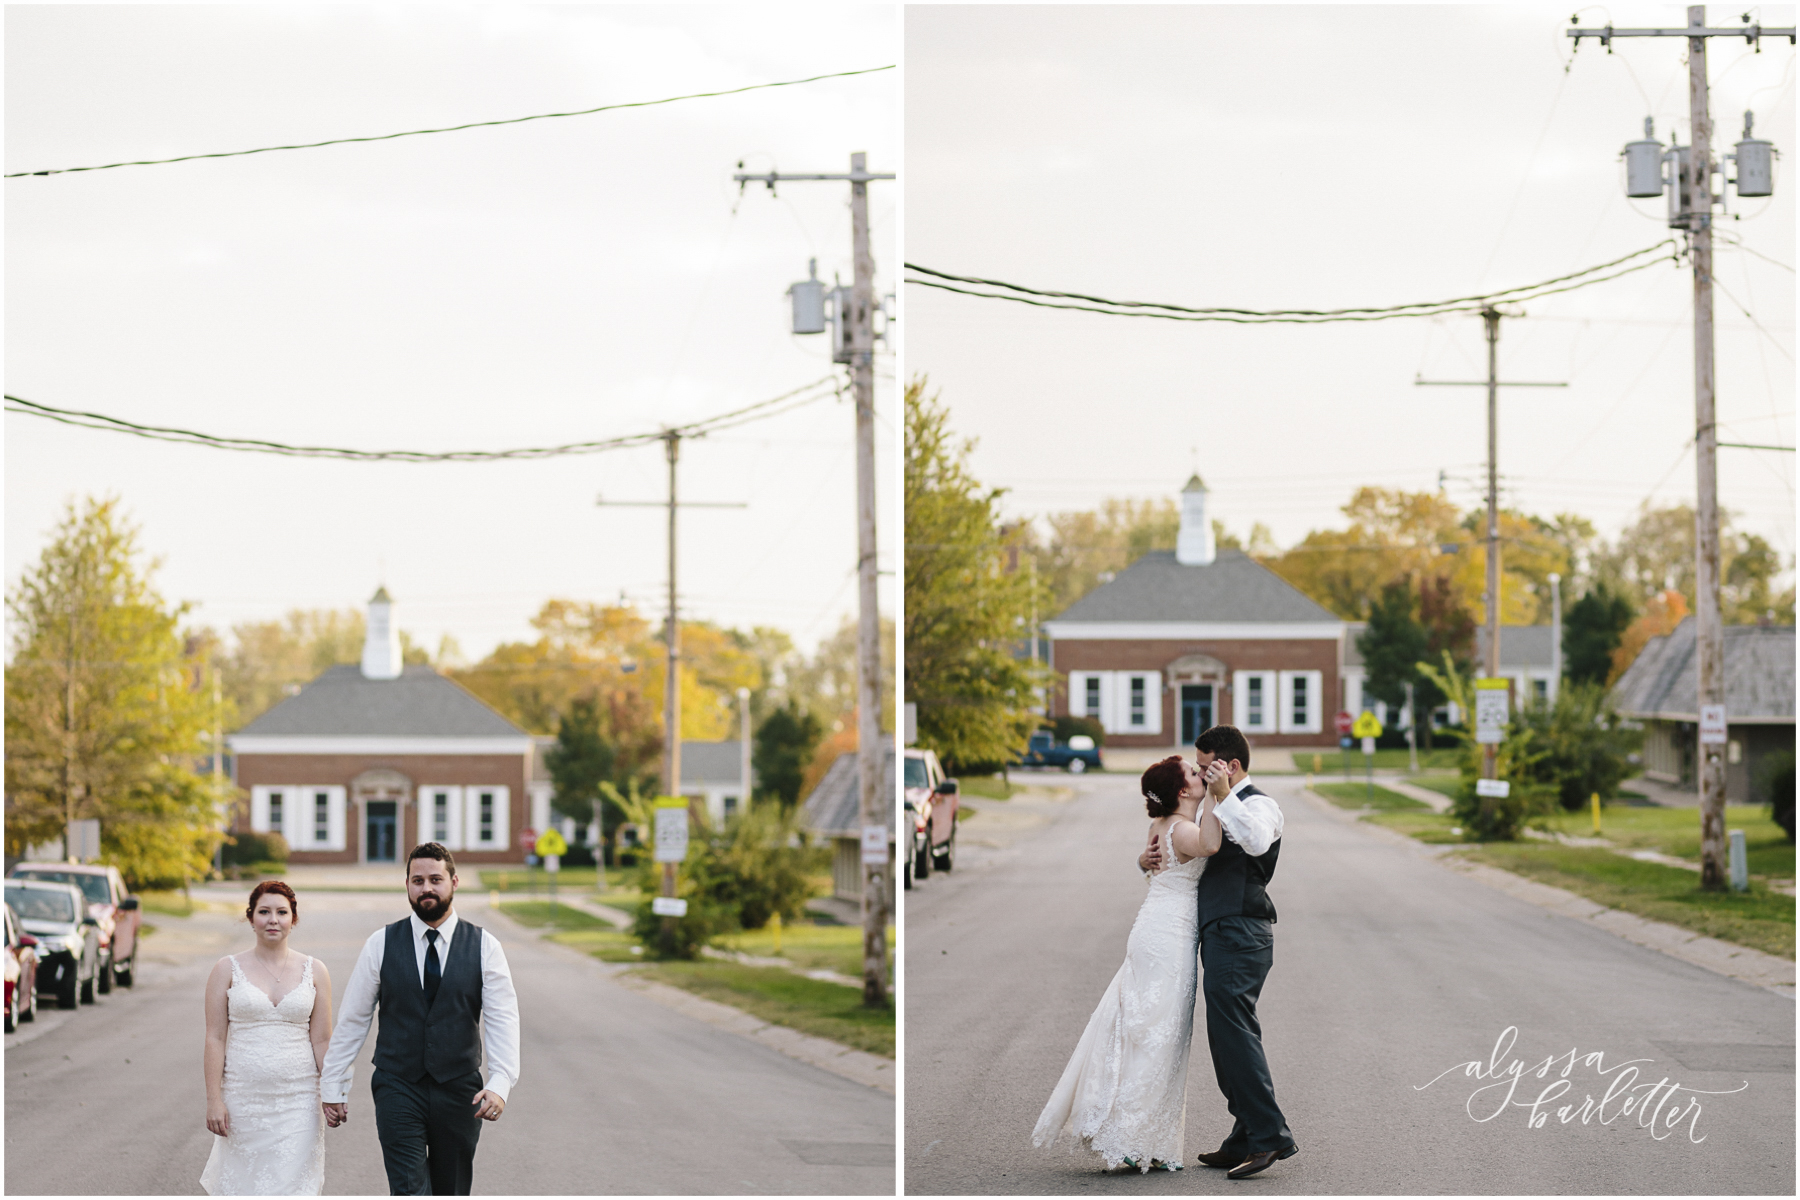 alyssa barletter photography wedding liberty missouri hipster quirky alex and shawn-1-41.jpg